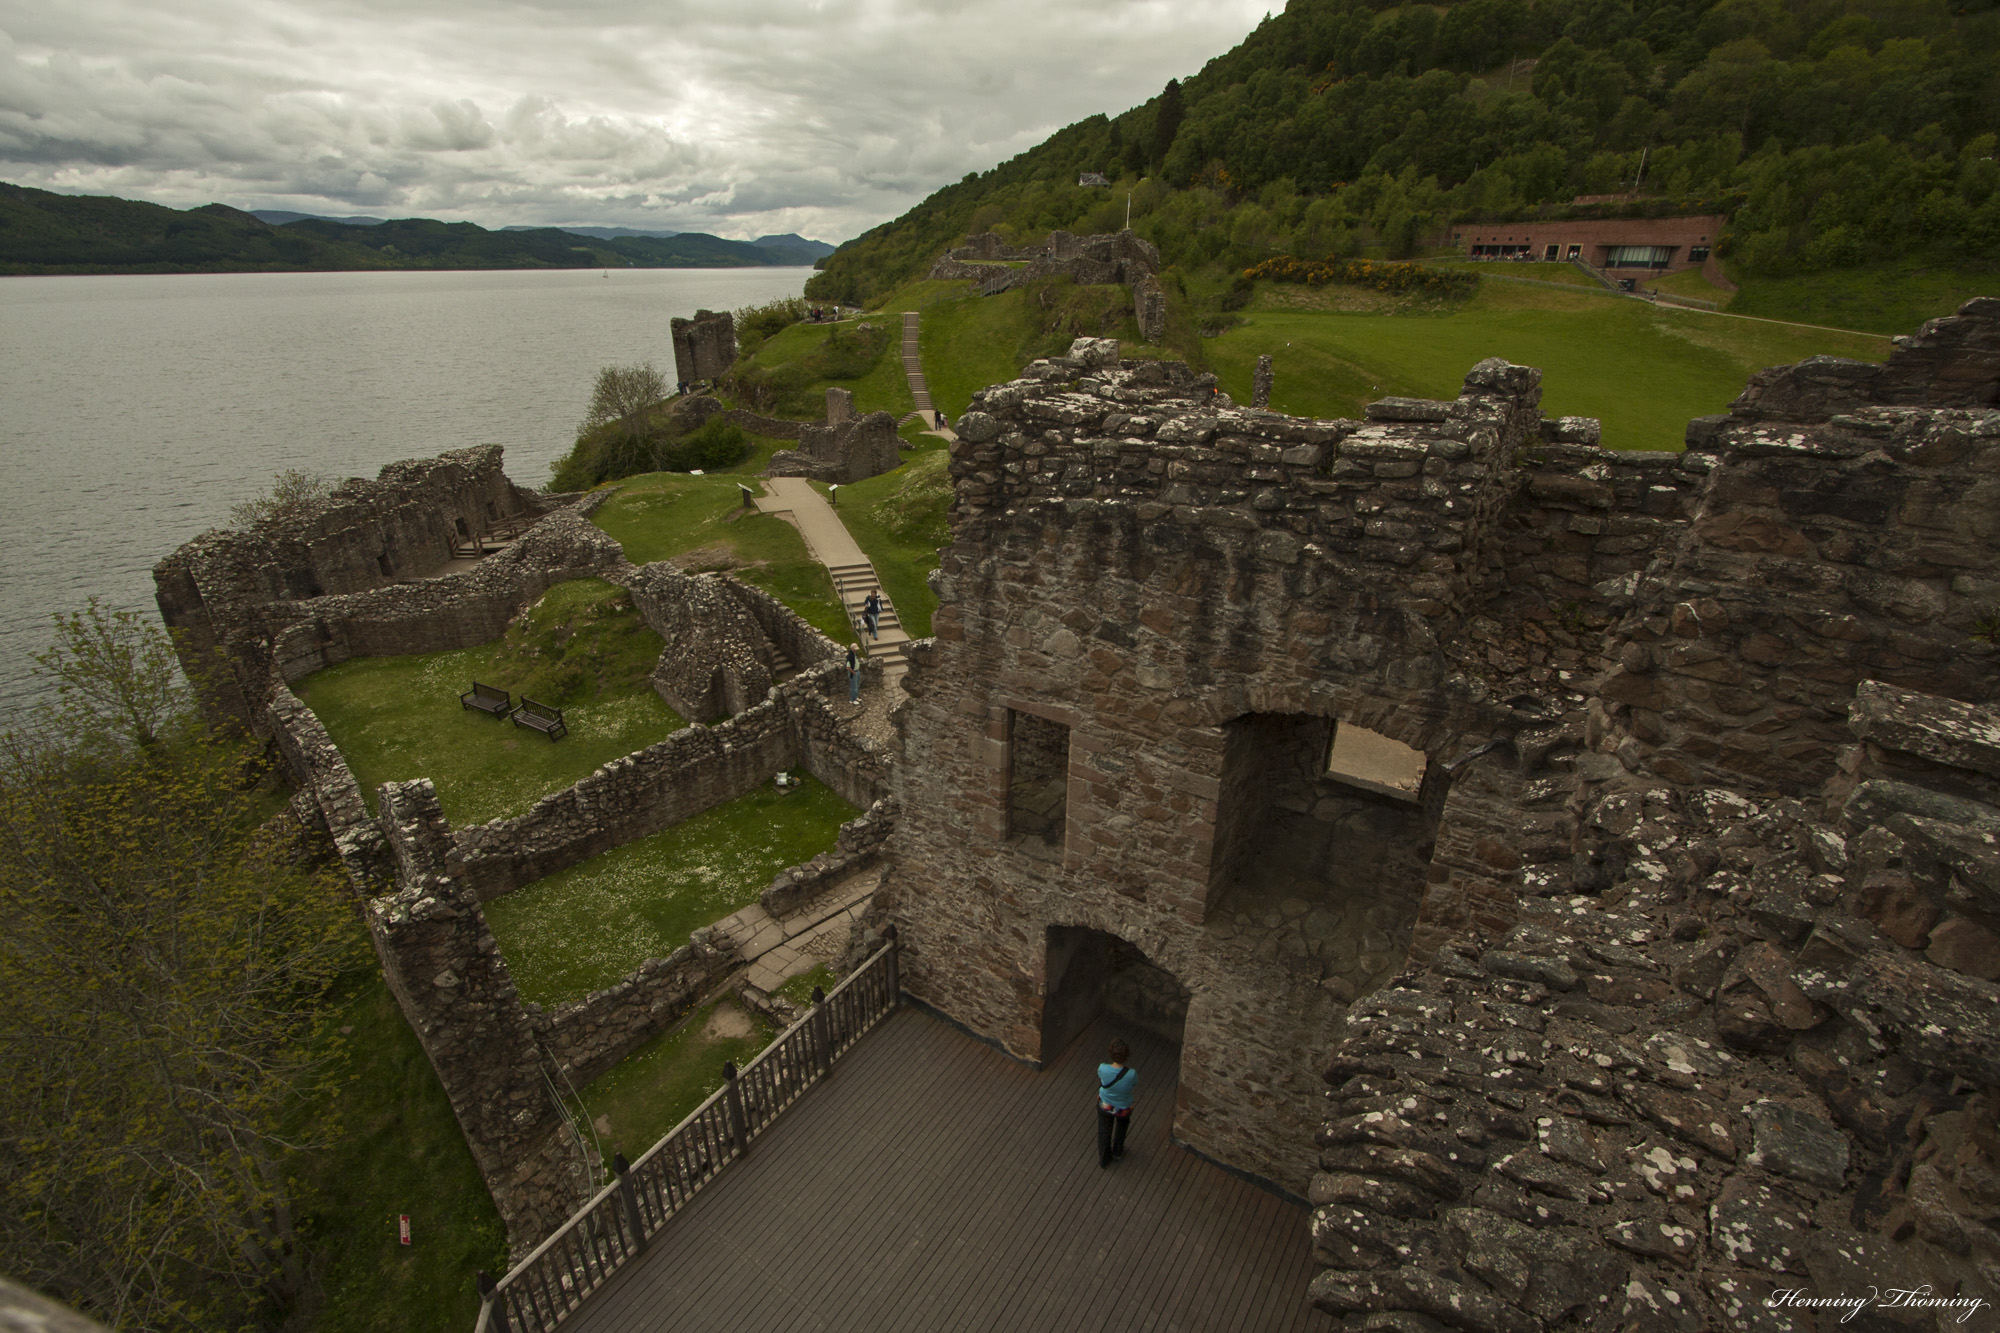 Urquhart Castle on the boundary of Loch Ness